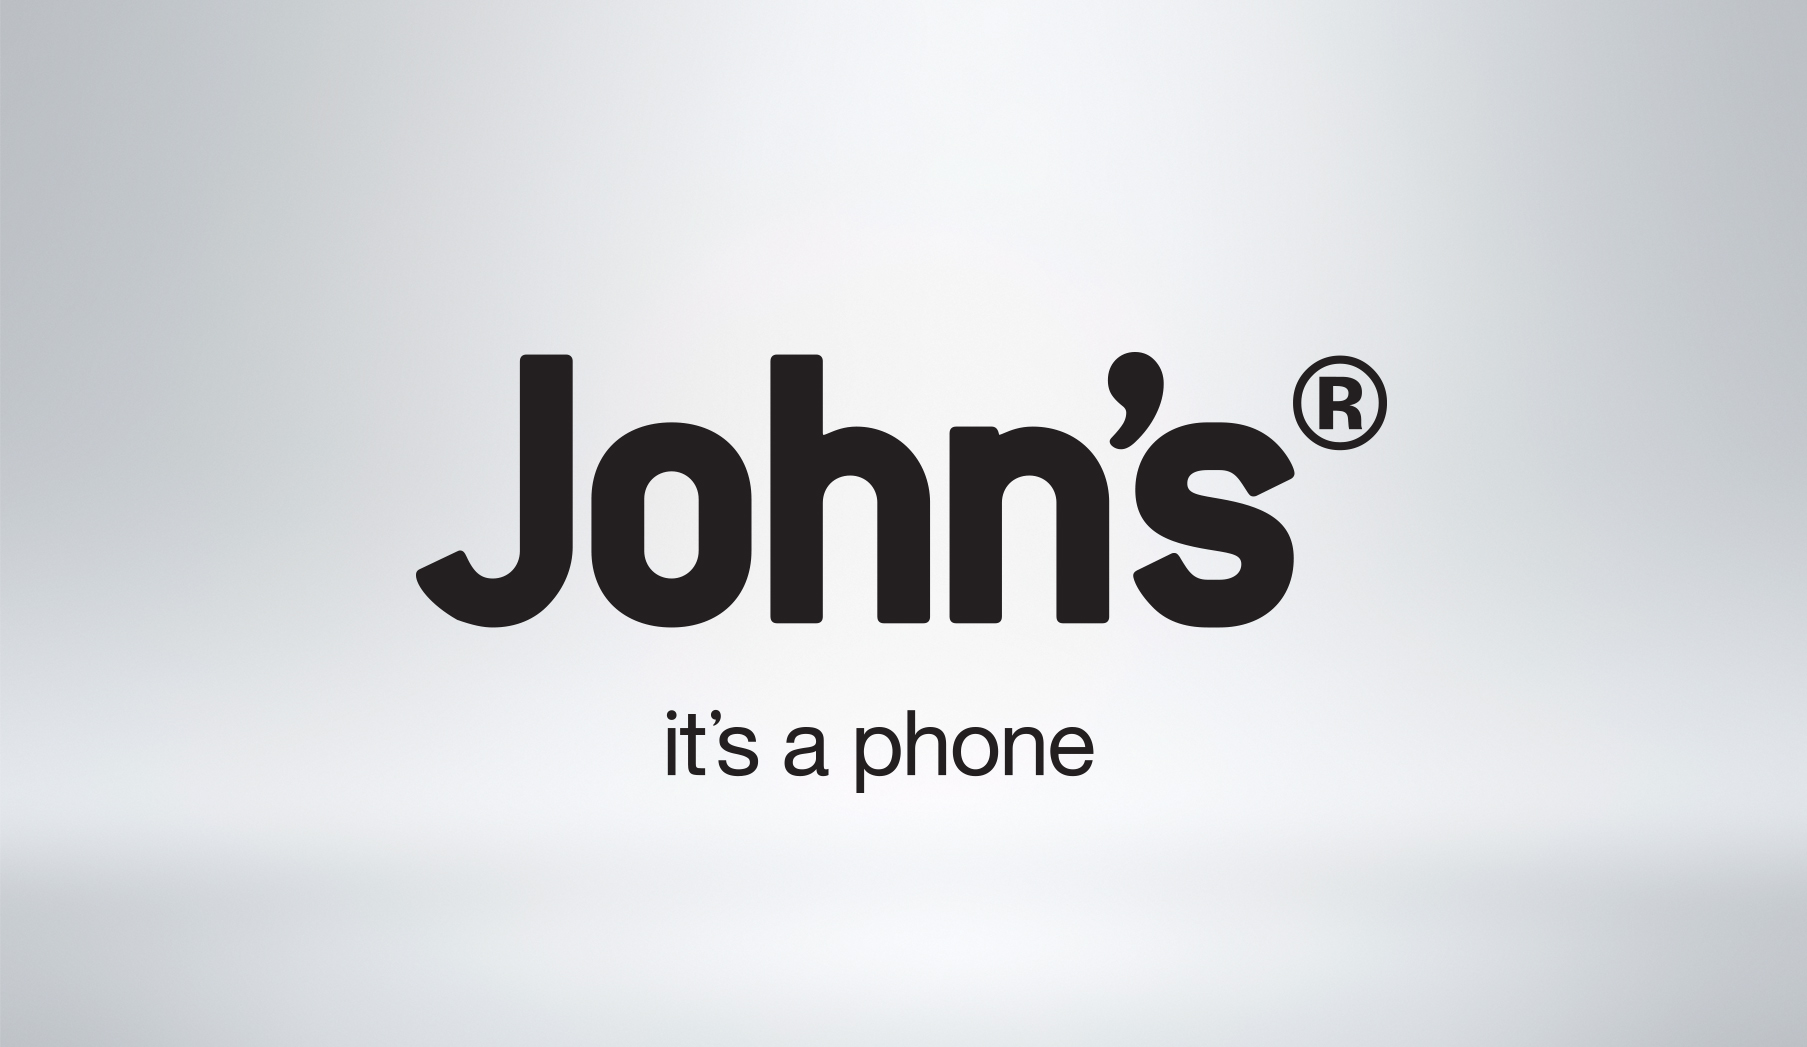 JOHNS PHONE LOGO